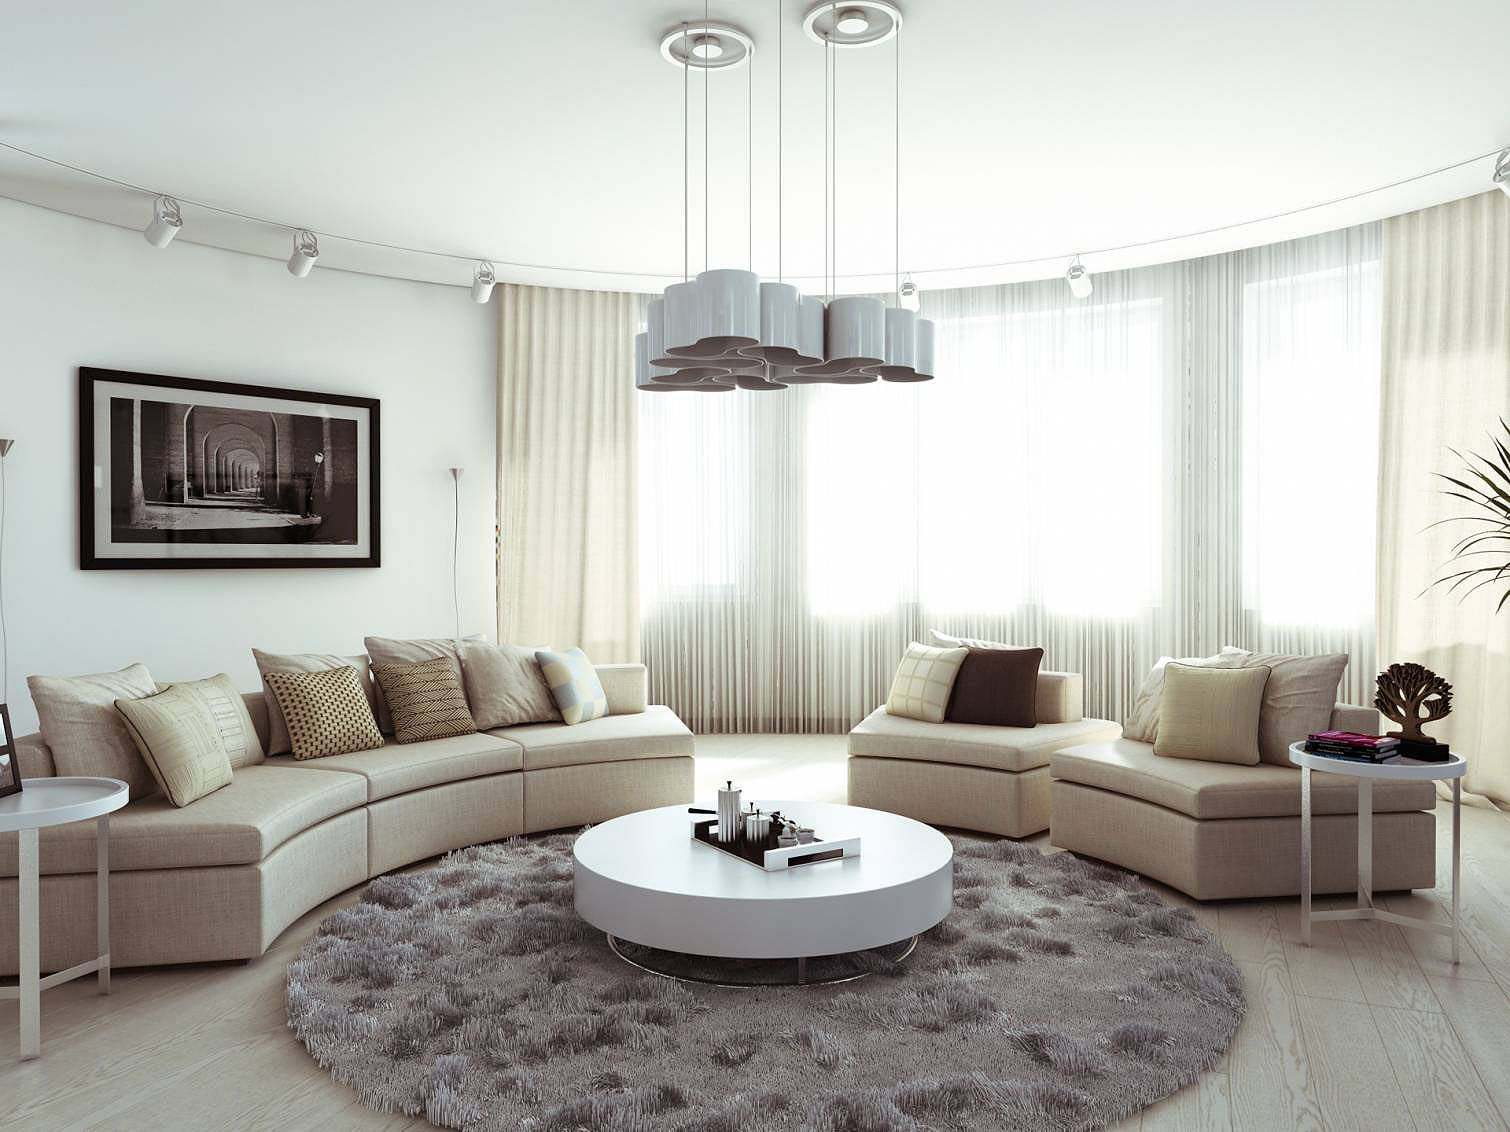 Unique Interior Decoration Style With Contemporary Round Area Rugs Mesmerizing Circular Living Room Design Design Ideas